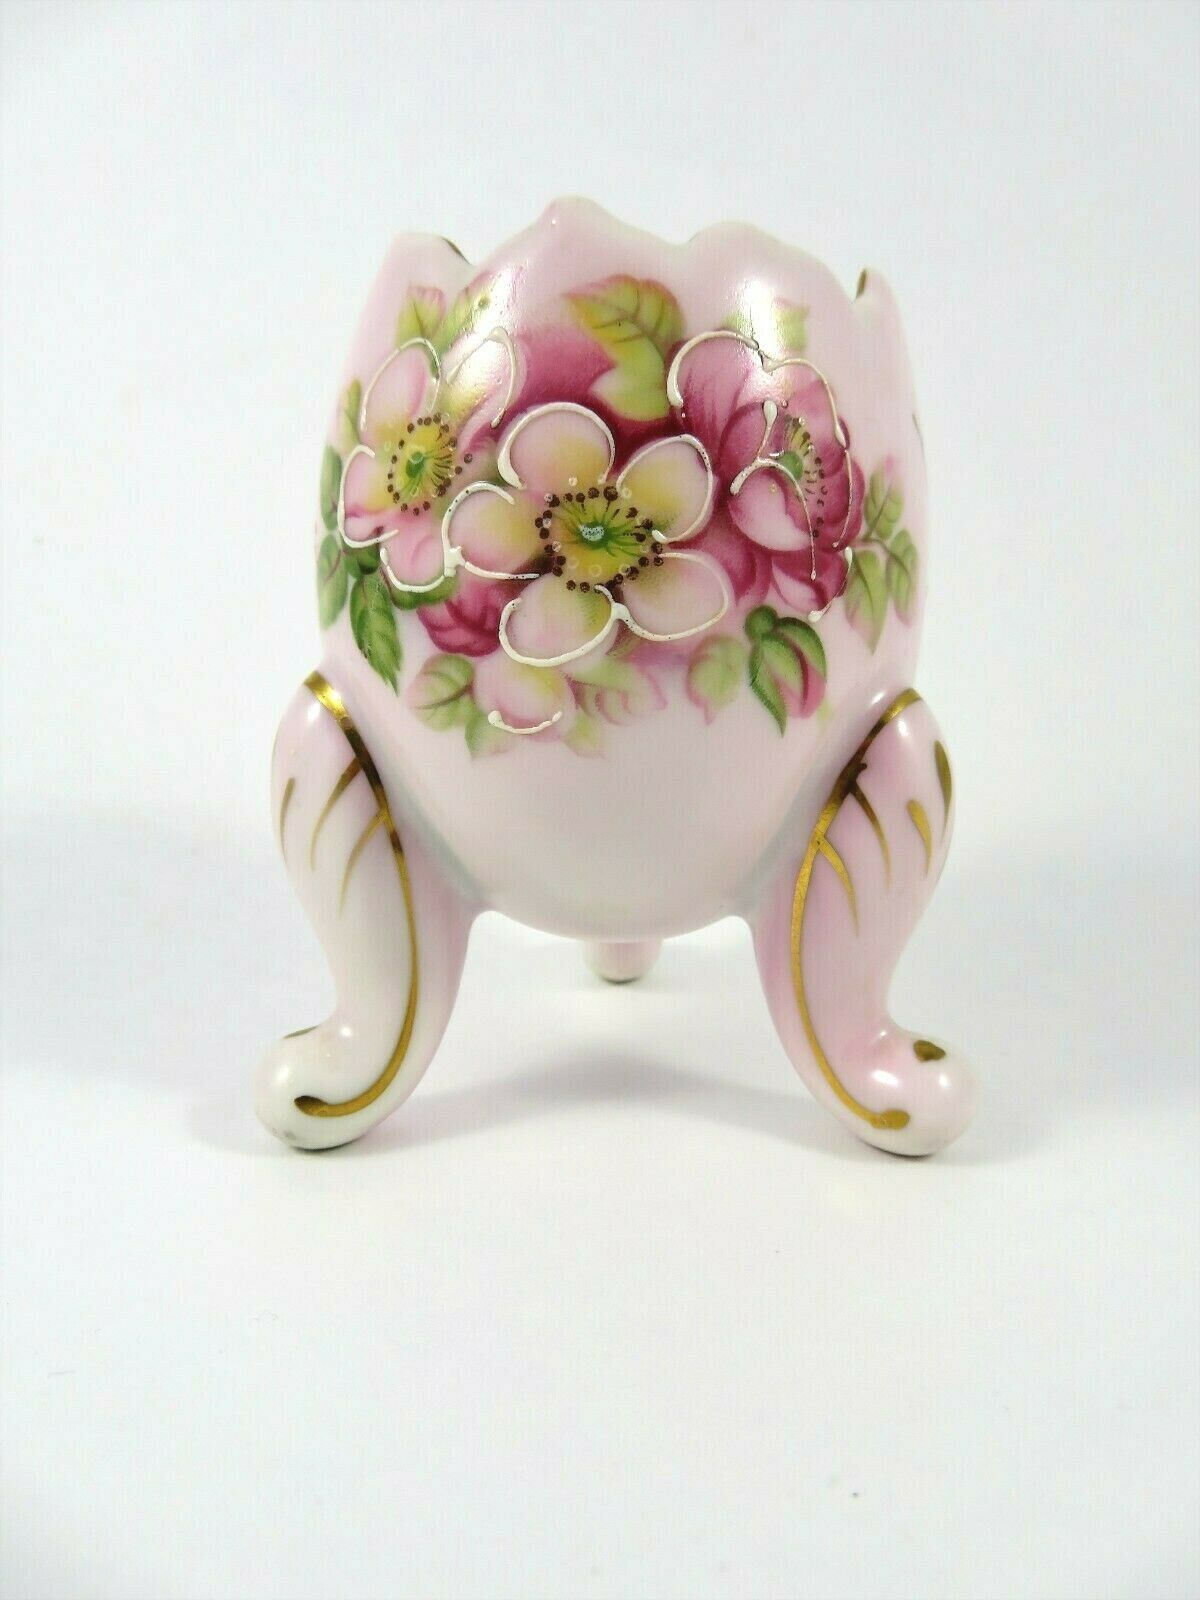 Primary image for Inarco Vintage Porcelain Egg Mini Planter Pale Pink Flowered 3 Legged E-116/S